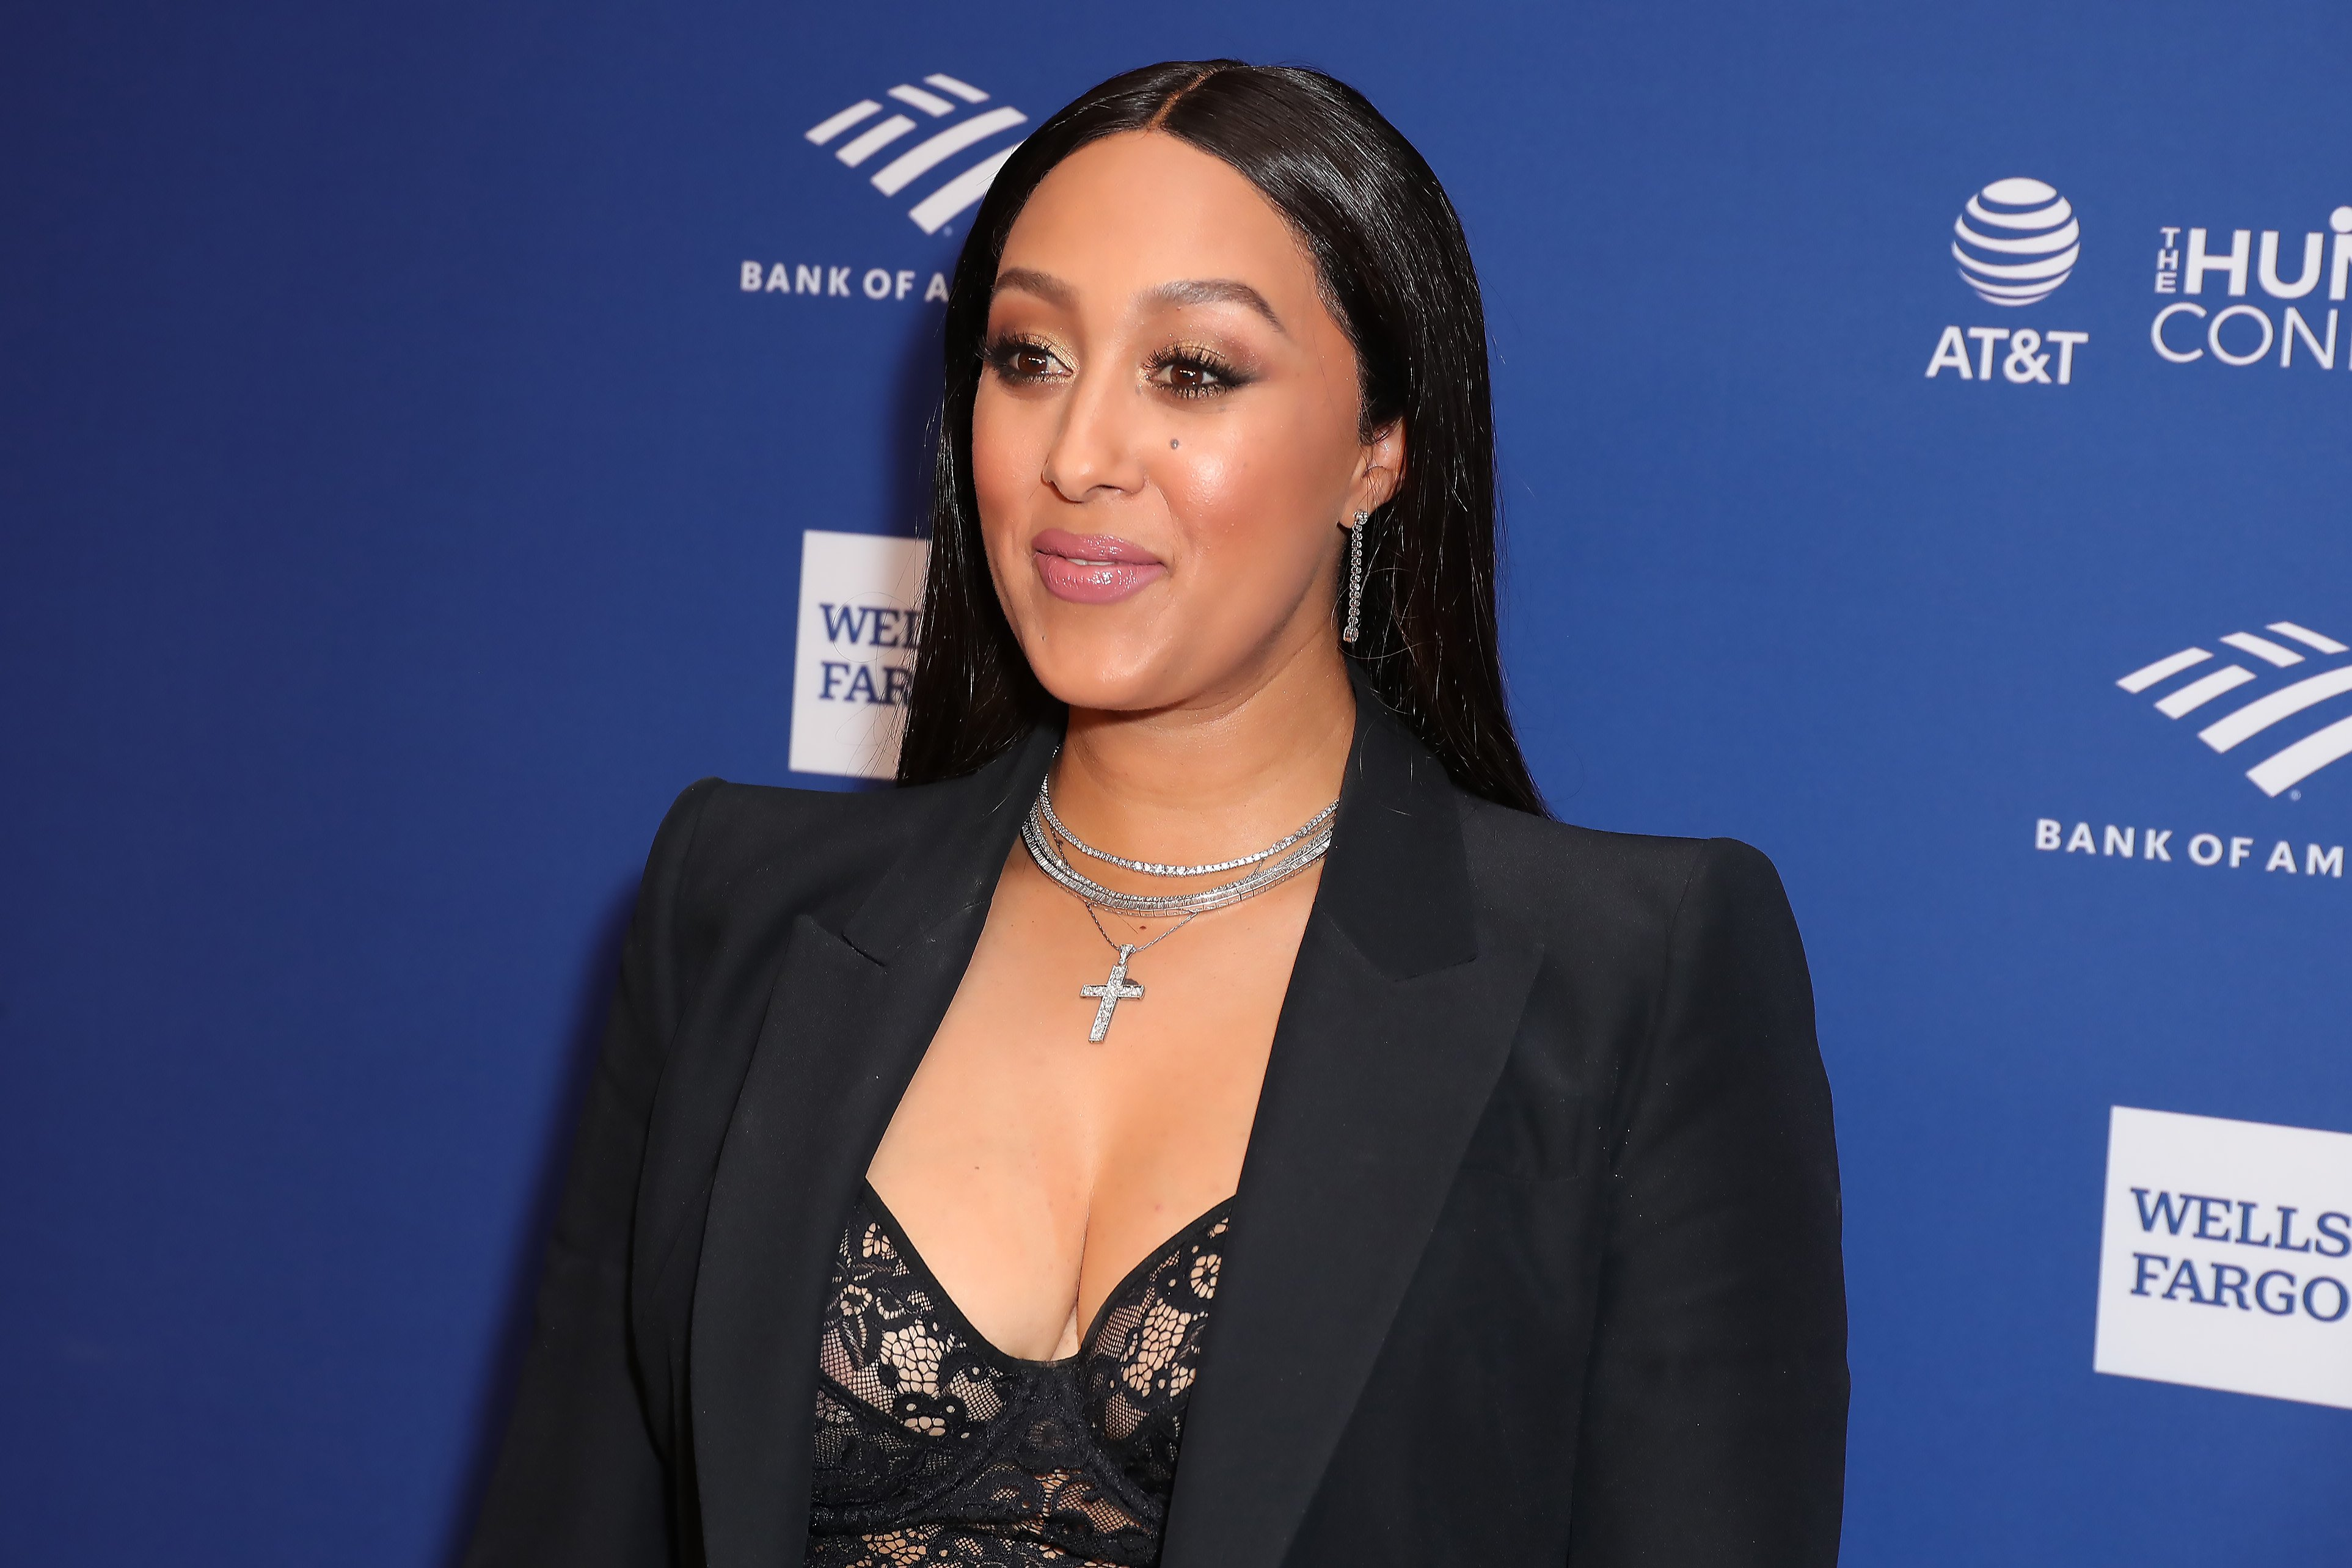 Tamera Mowry at the 51st NAACP Image Awards on February 21, 2020 in Hollywood, California.   Photo: Getty Images